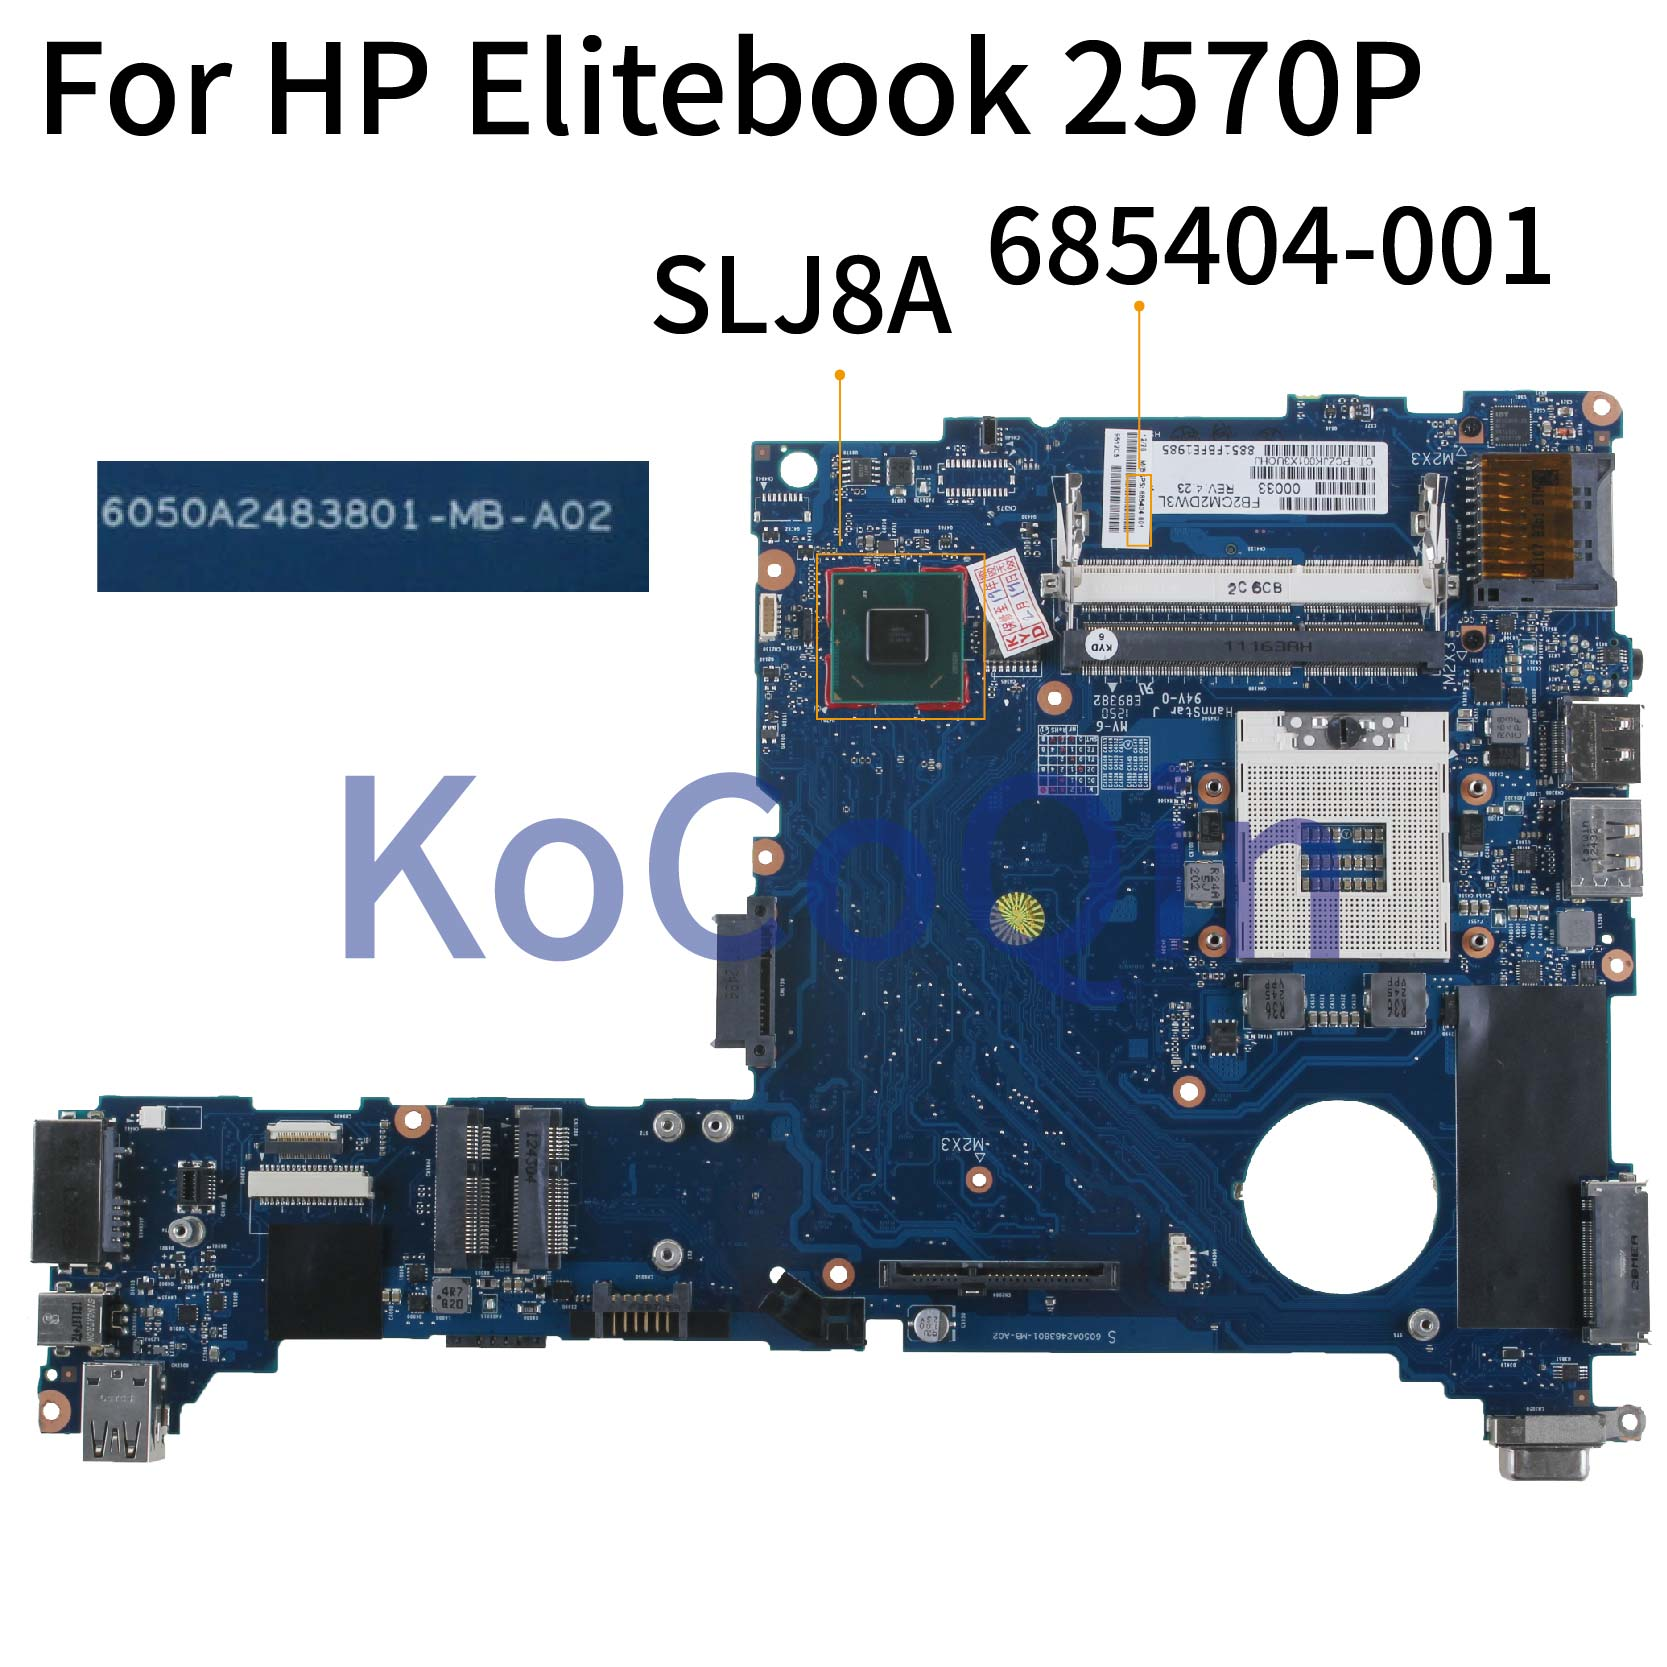 KoCoQin Laptop Motherboard For HP Elitebook 2570P Mainboard 685404-001 685404-501 6050A2483801-MA-A02 SLJ8A